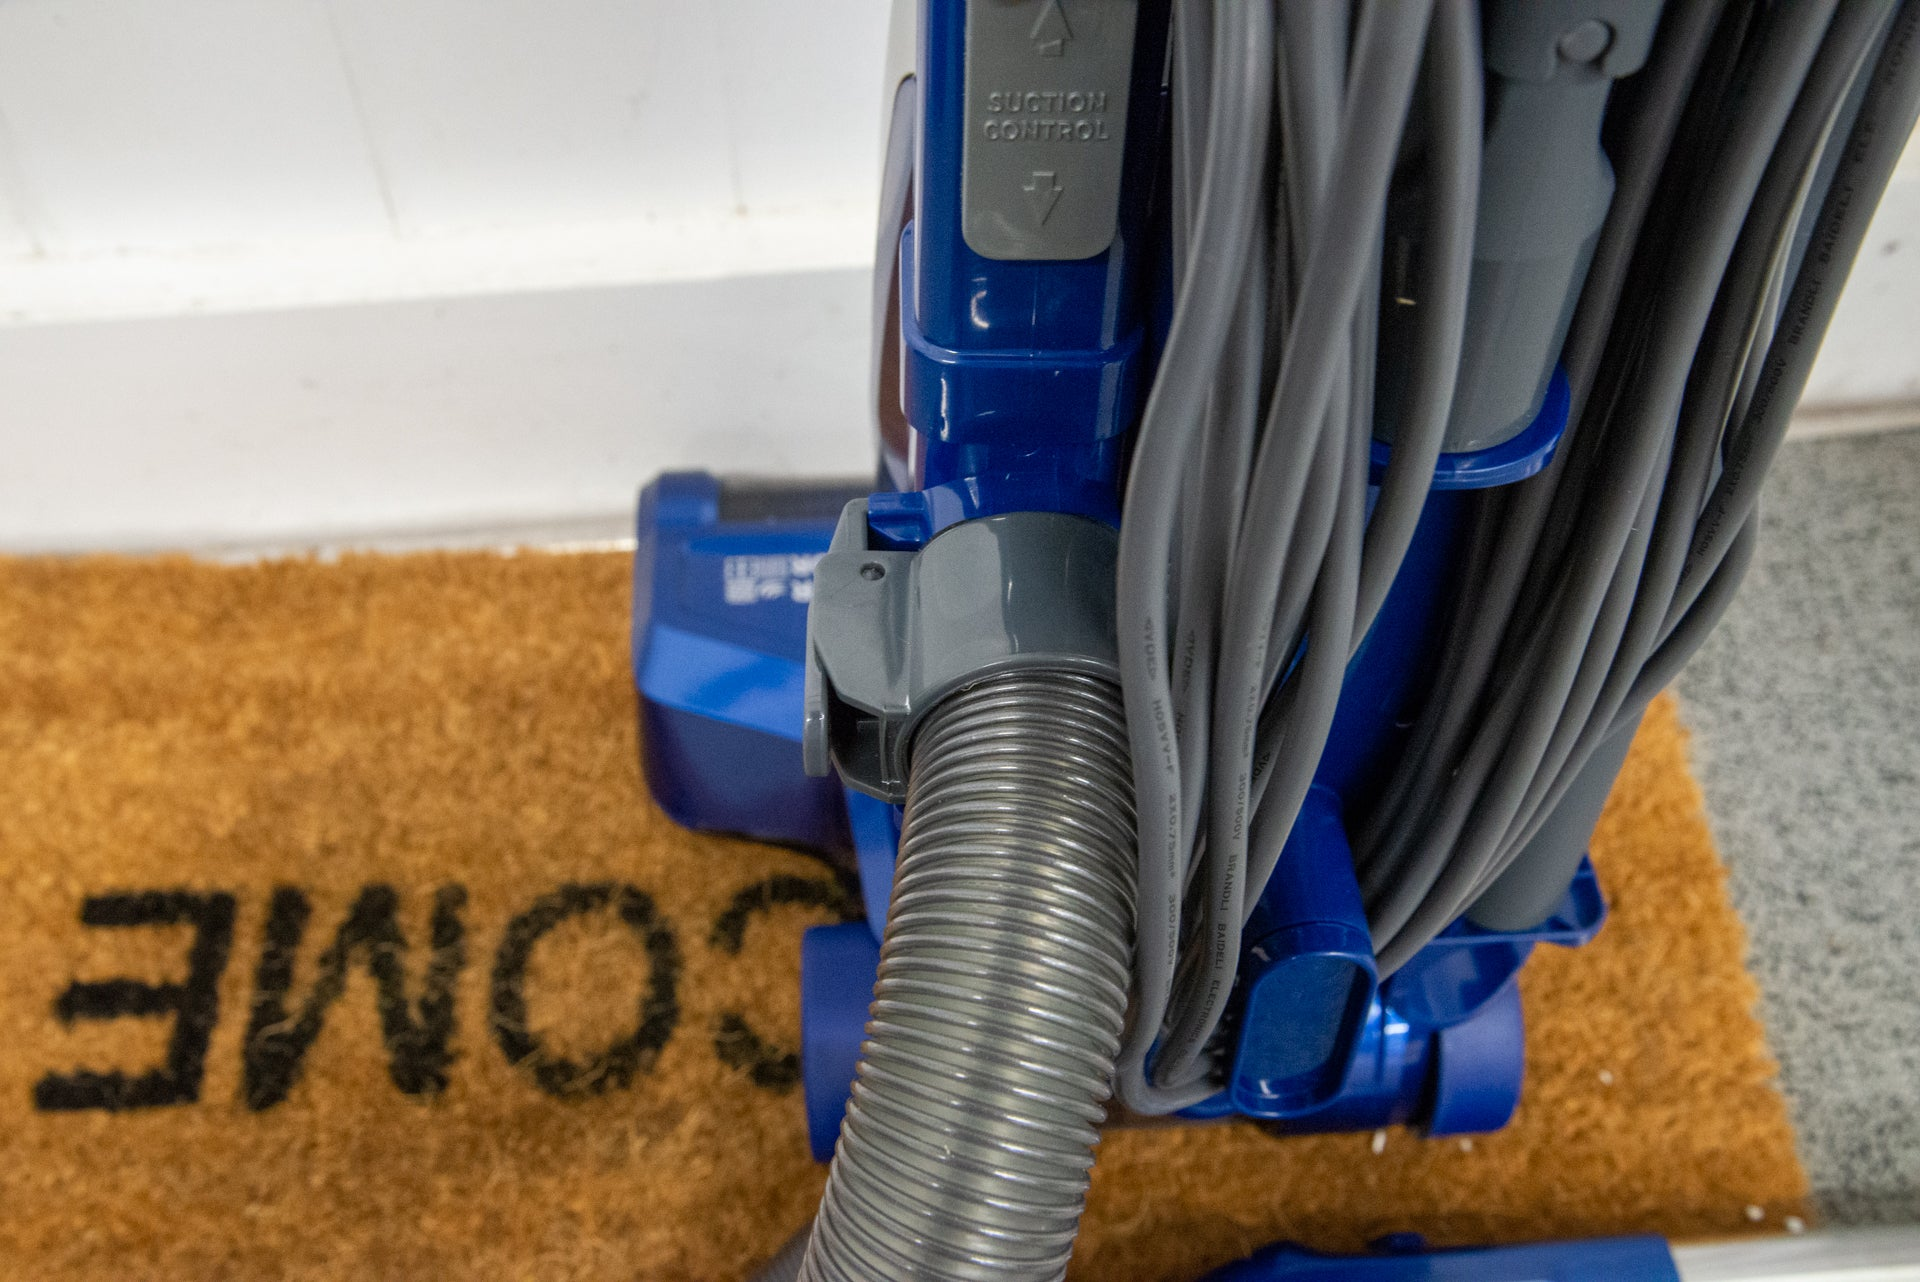 Hoover H-Upright 500 Plus hose connection